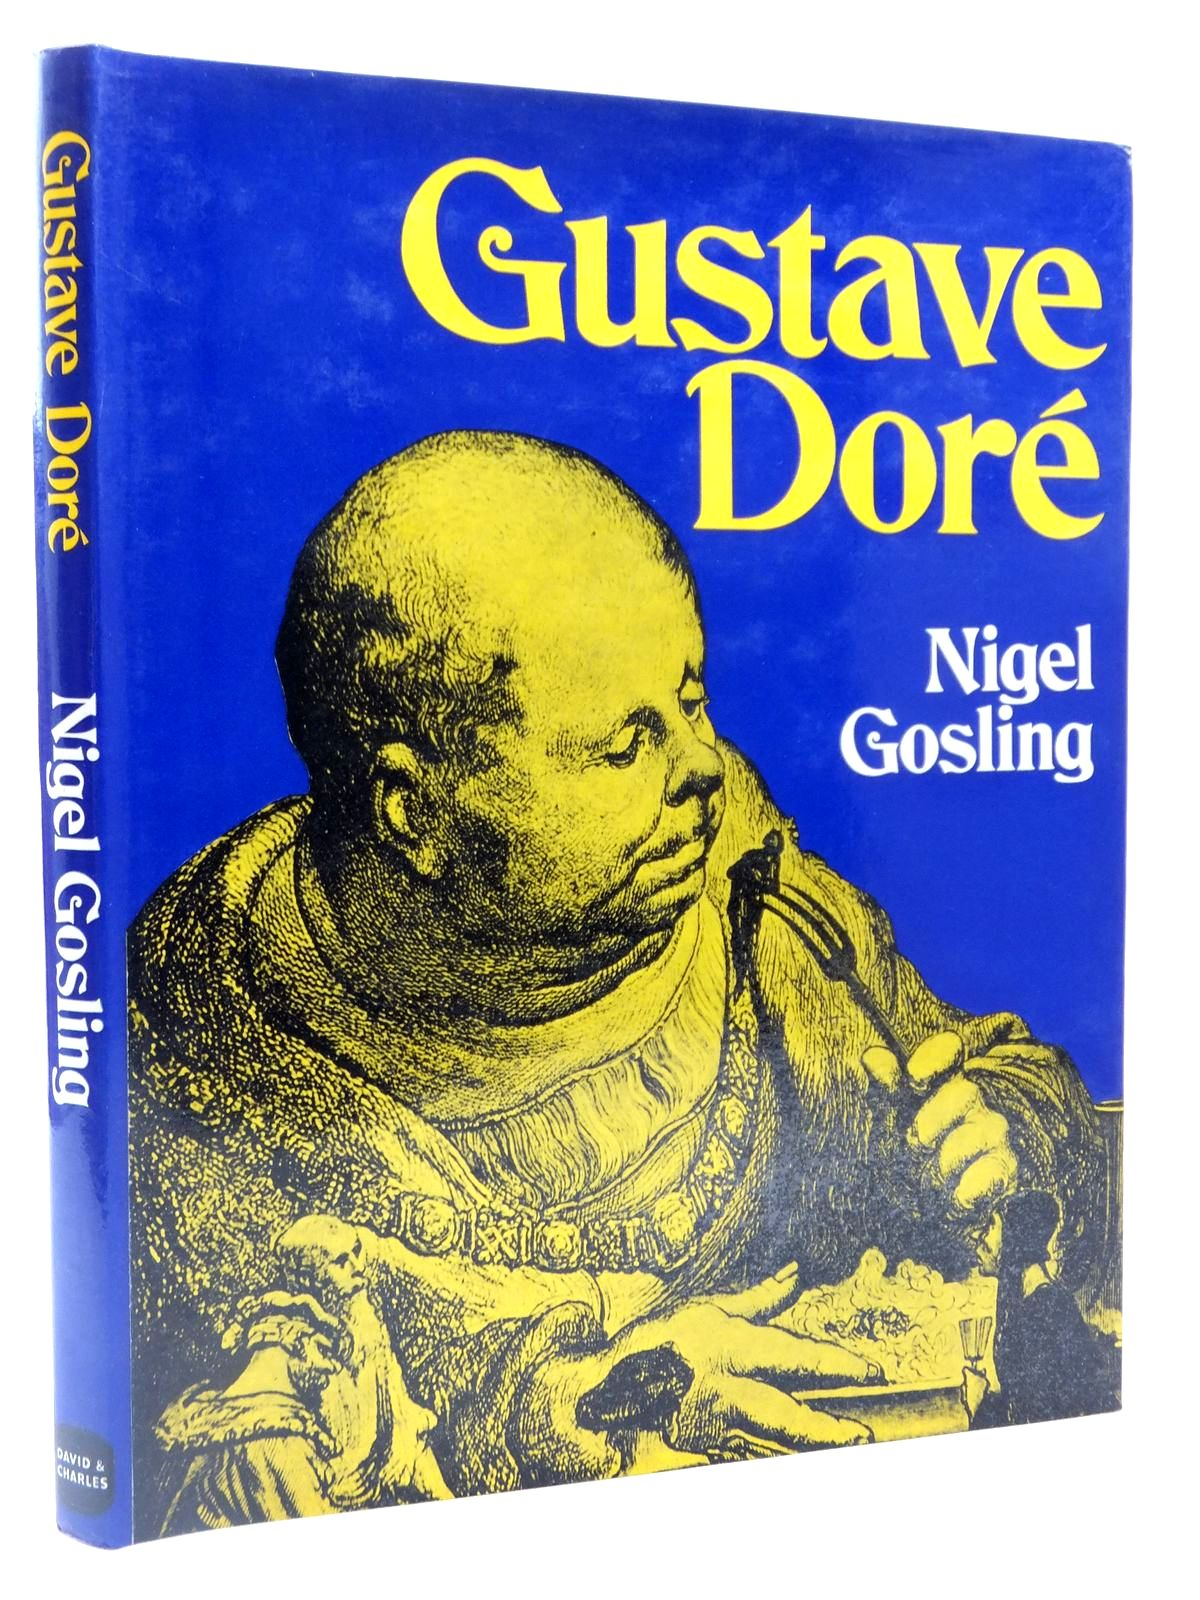 Photo of GUSTAVE DORE written by Gosling, Nigel illustrated by Dore, Gustave published by David & Charles (STOCK CODE: 2122427)  for sale by Stella & Rose's Books